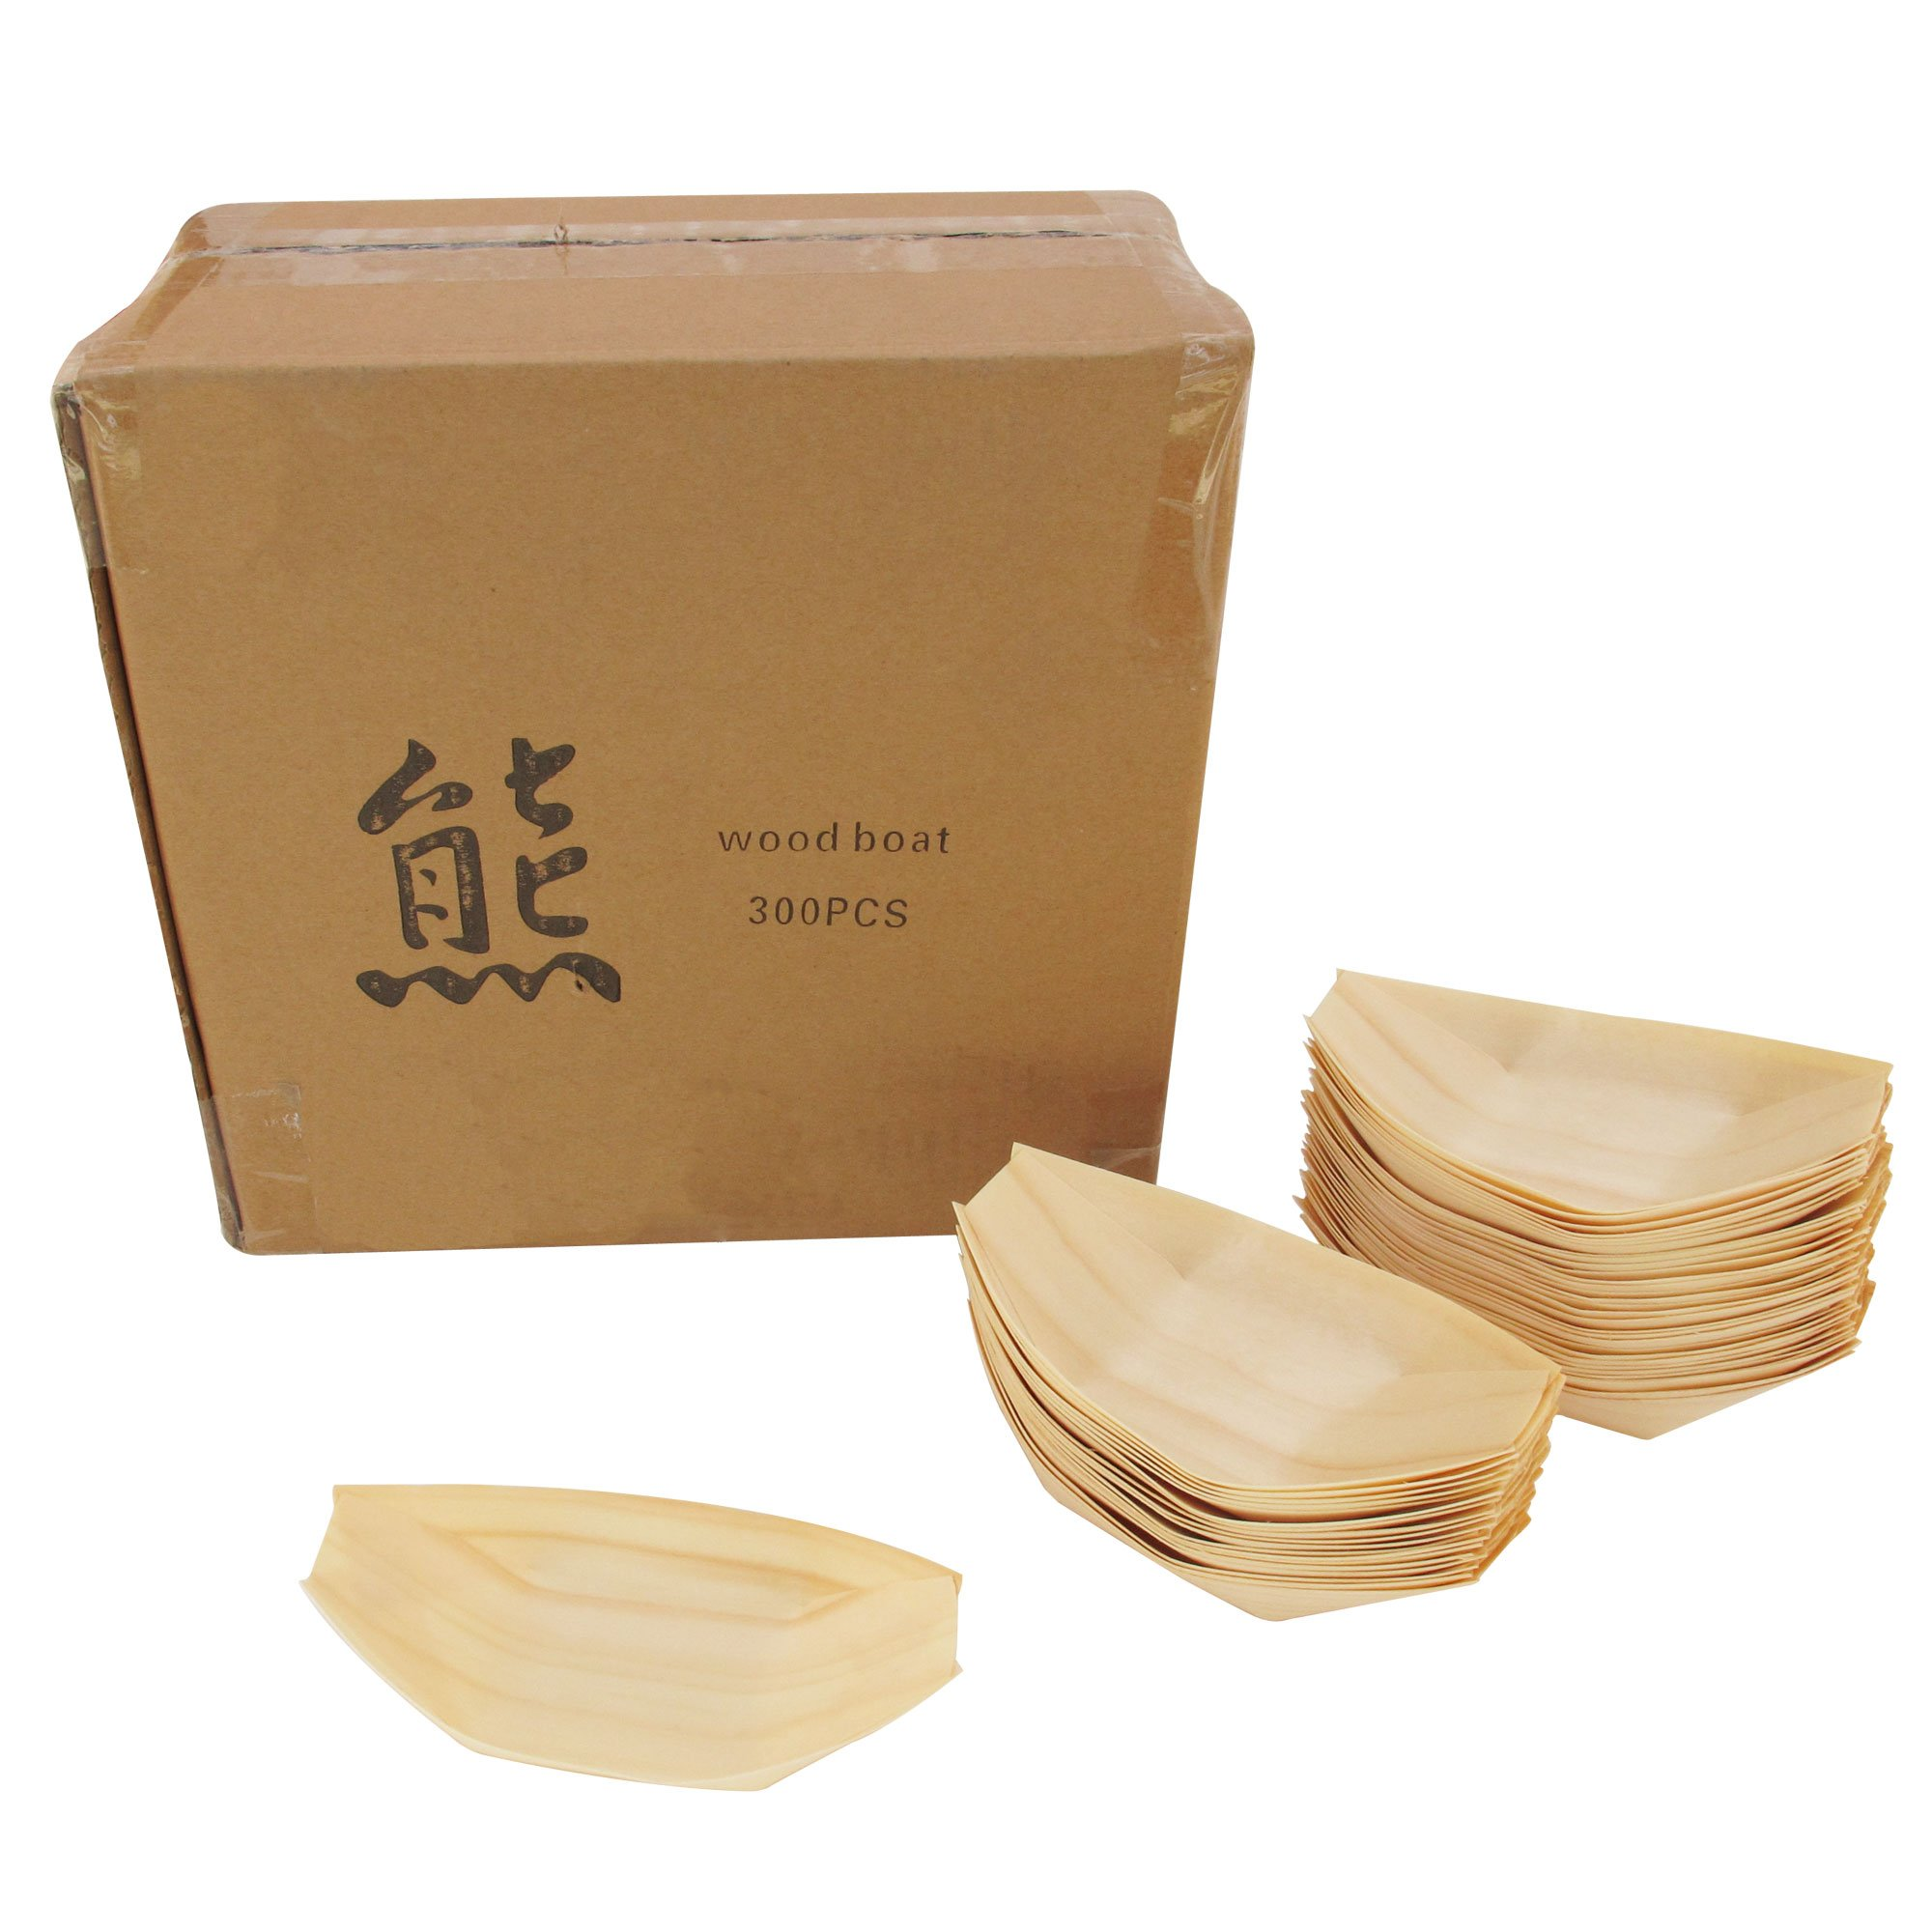 BambooMN Brand - Disposable Wood Boat Plates / Dishes, 5.25'' Long x 3'' Wide x 1'' High, 100 Pieces by BambooMN (Image #4)